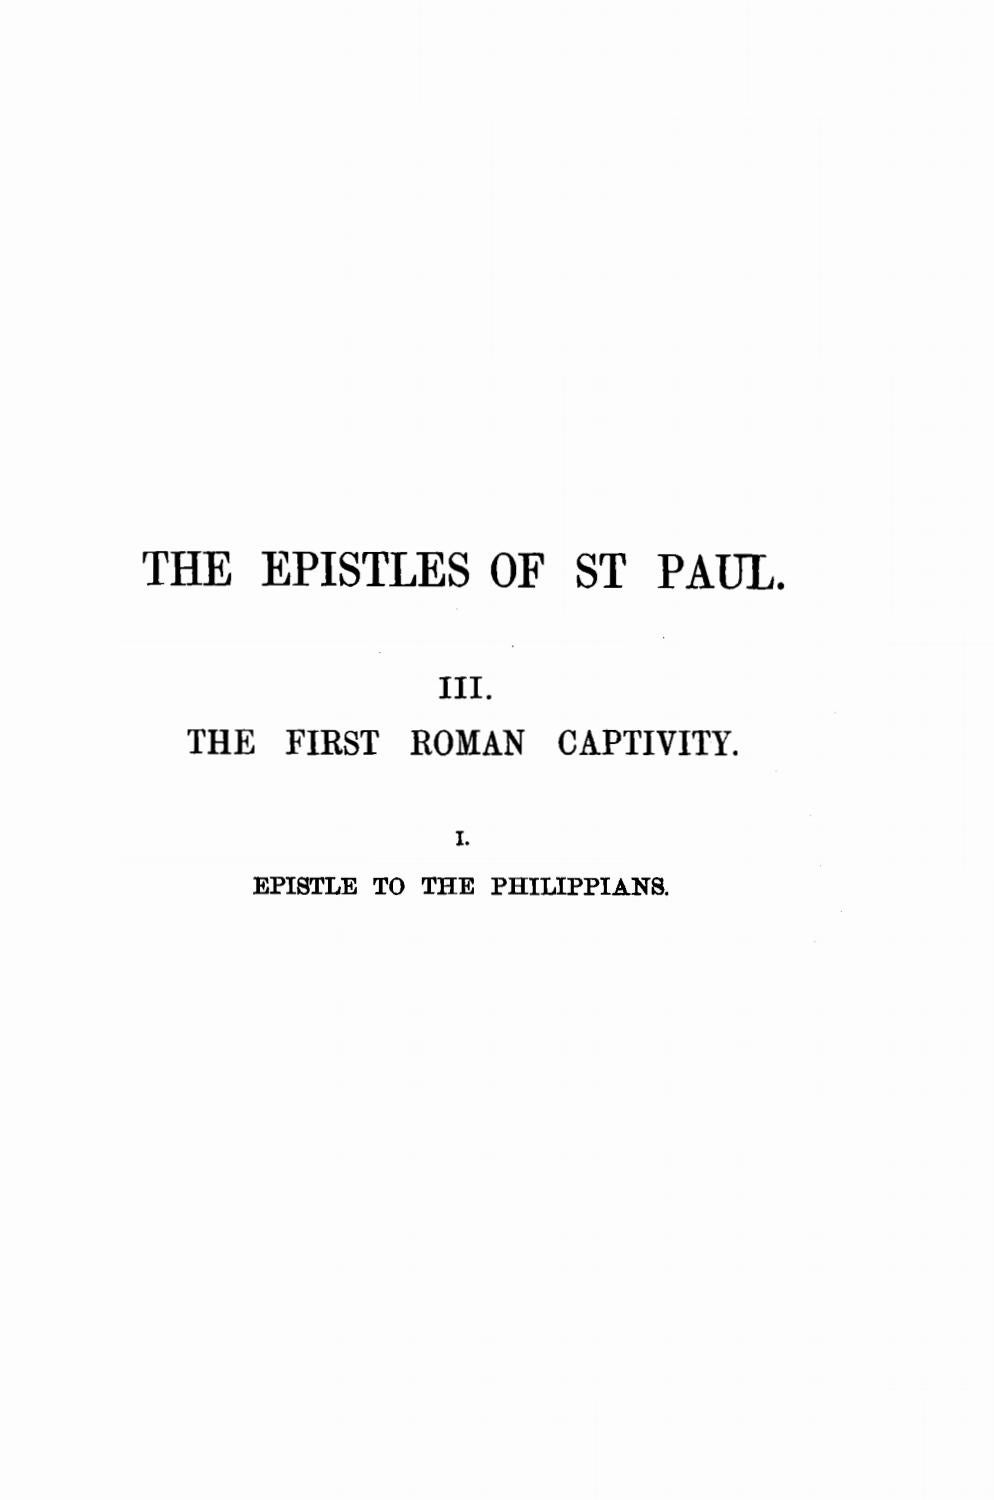 Joseph Barber Lightfoot [1828 1889] Saint Paul s Epistle to